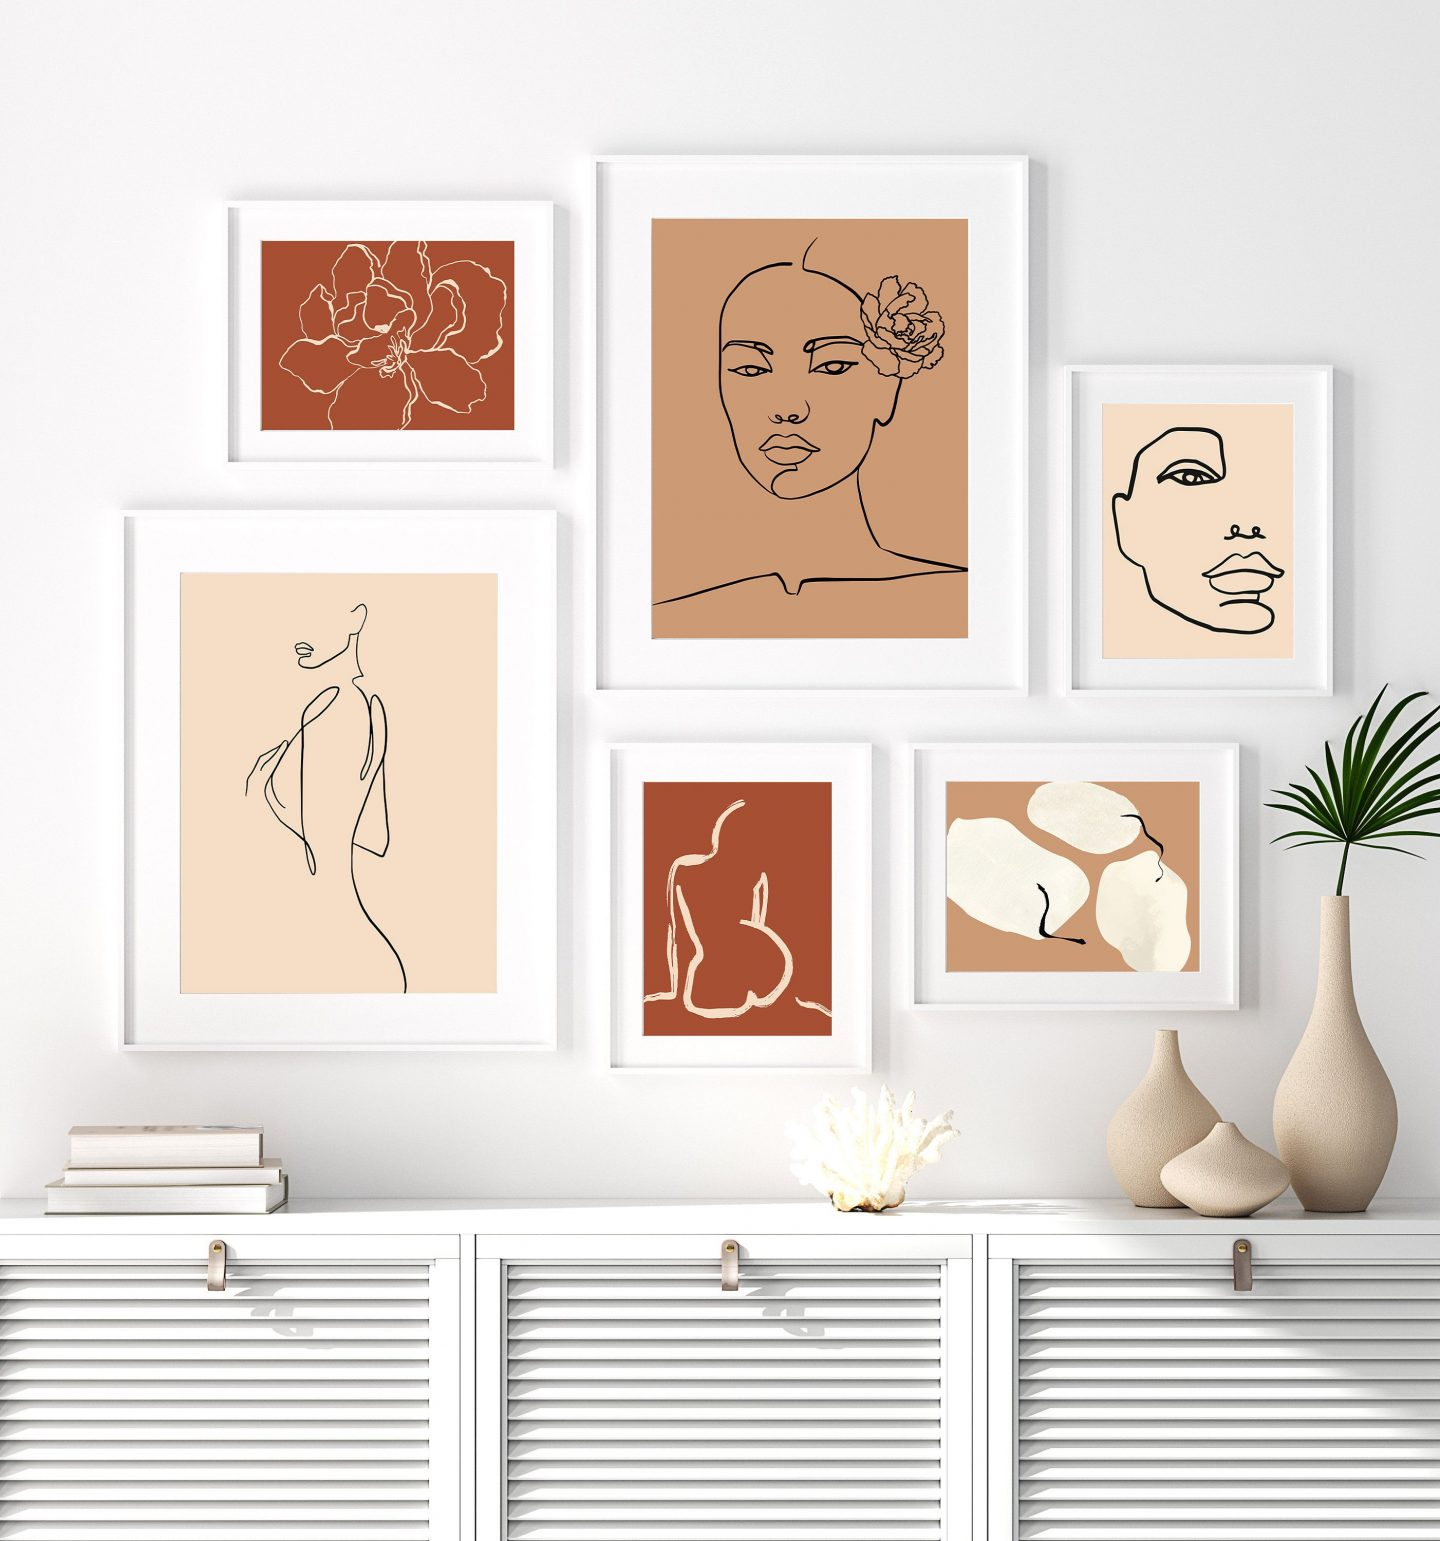 Bohemian wall decor set with female figures in nude and brown tones